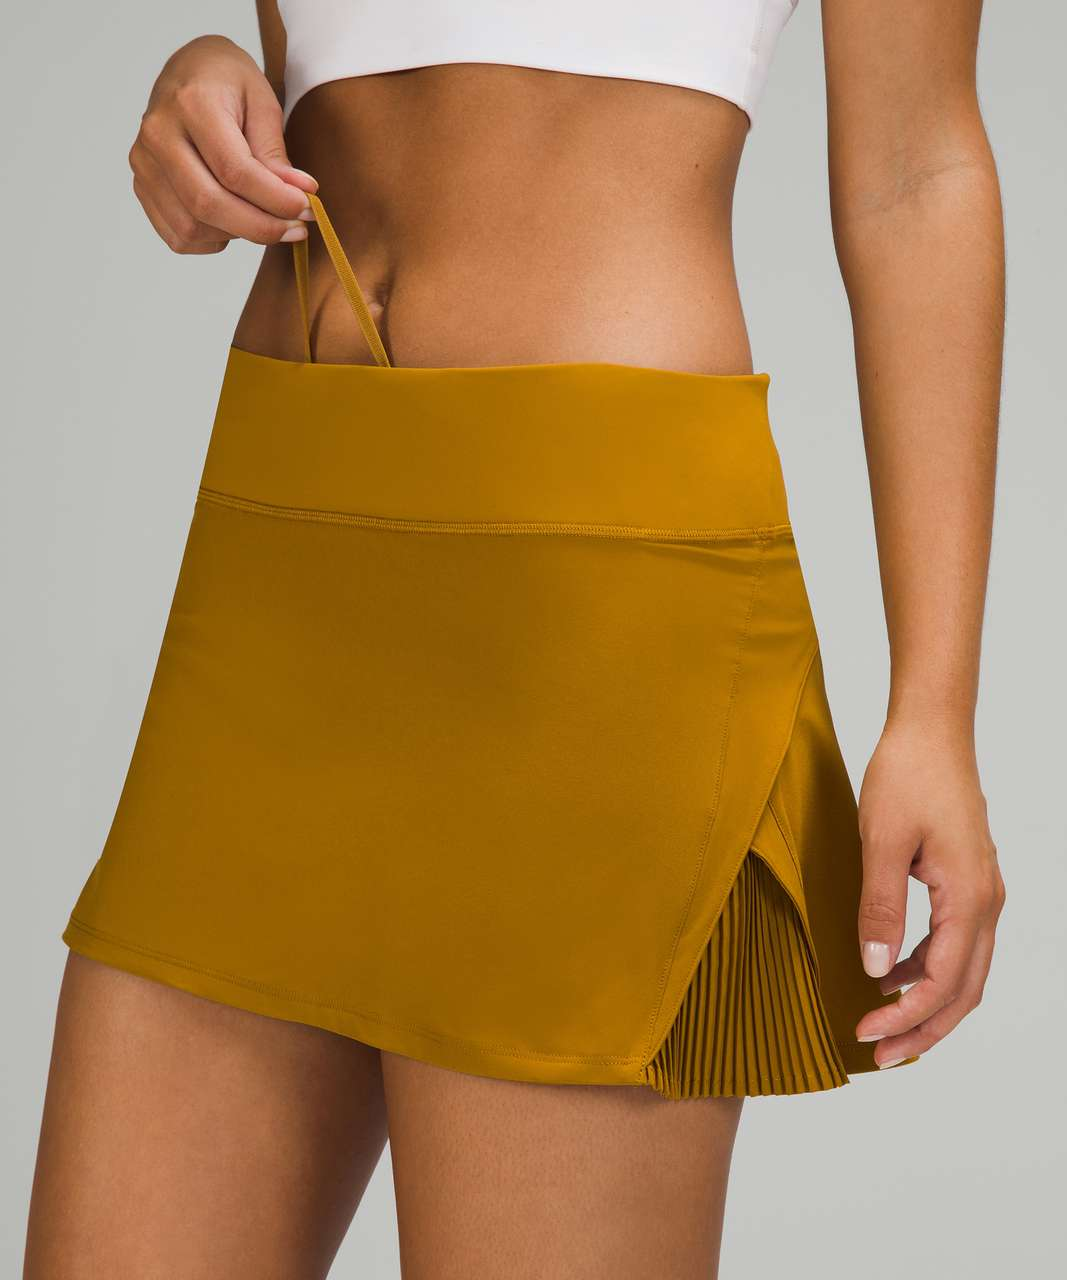 Lululemon Play Off The Pleats Mid Rise Skirt - Gold Spice